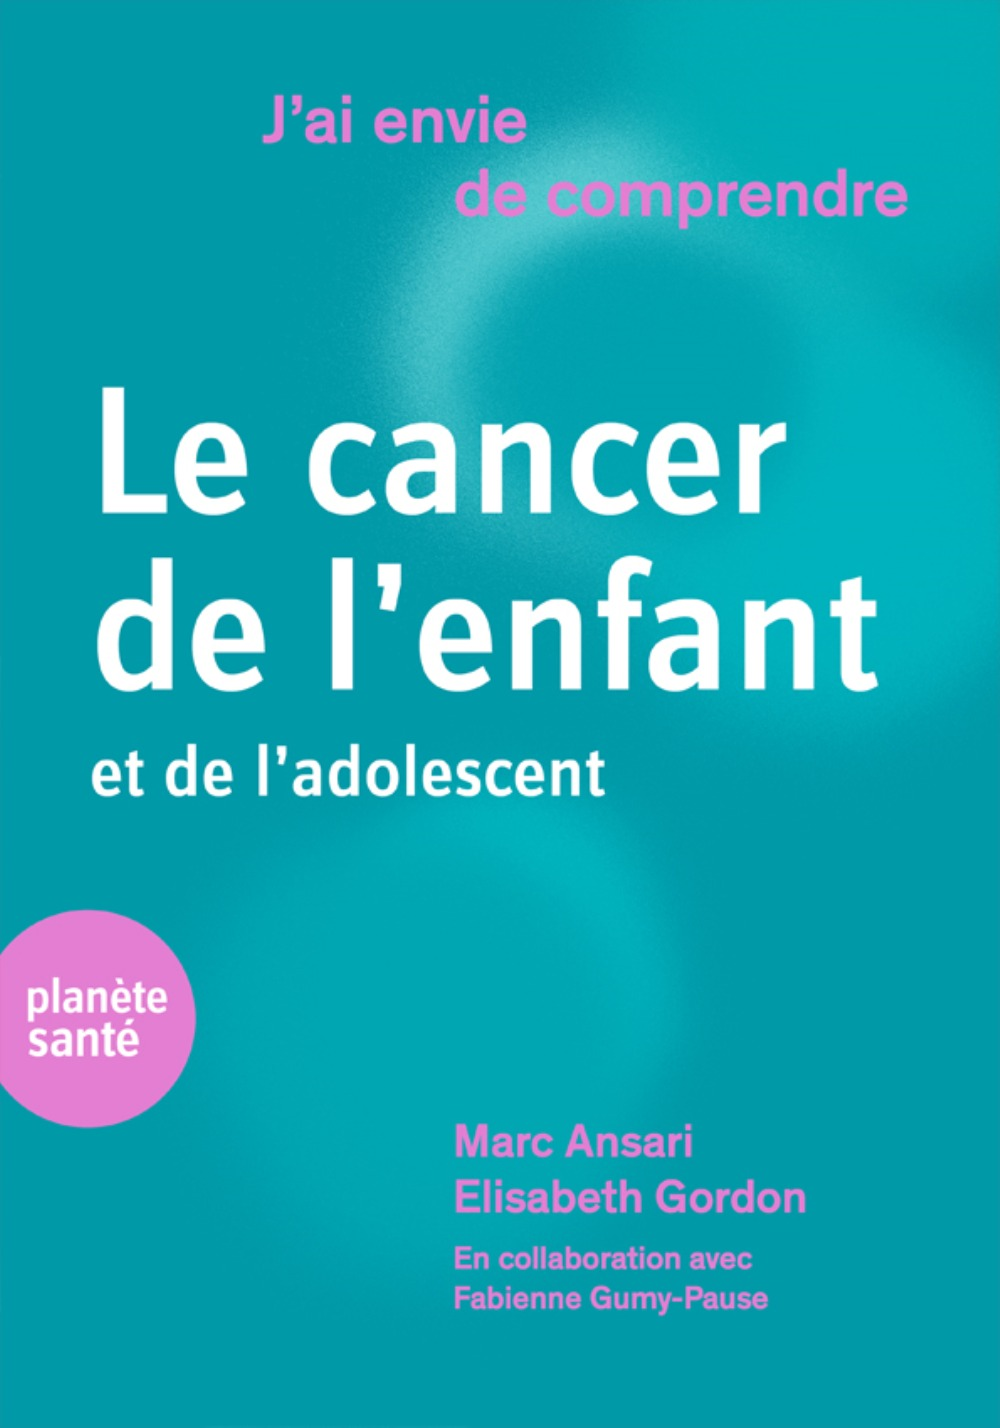 J AI ENVIE DE COMPRENDRE LE CANCER DE L ENFANT ET DE L ADOLESCENT